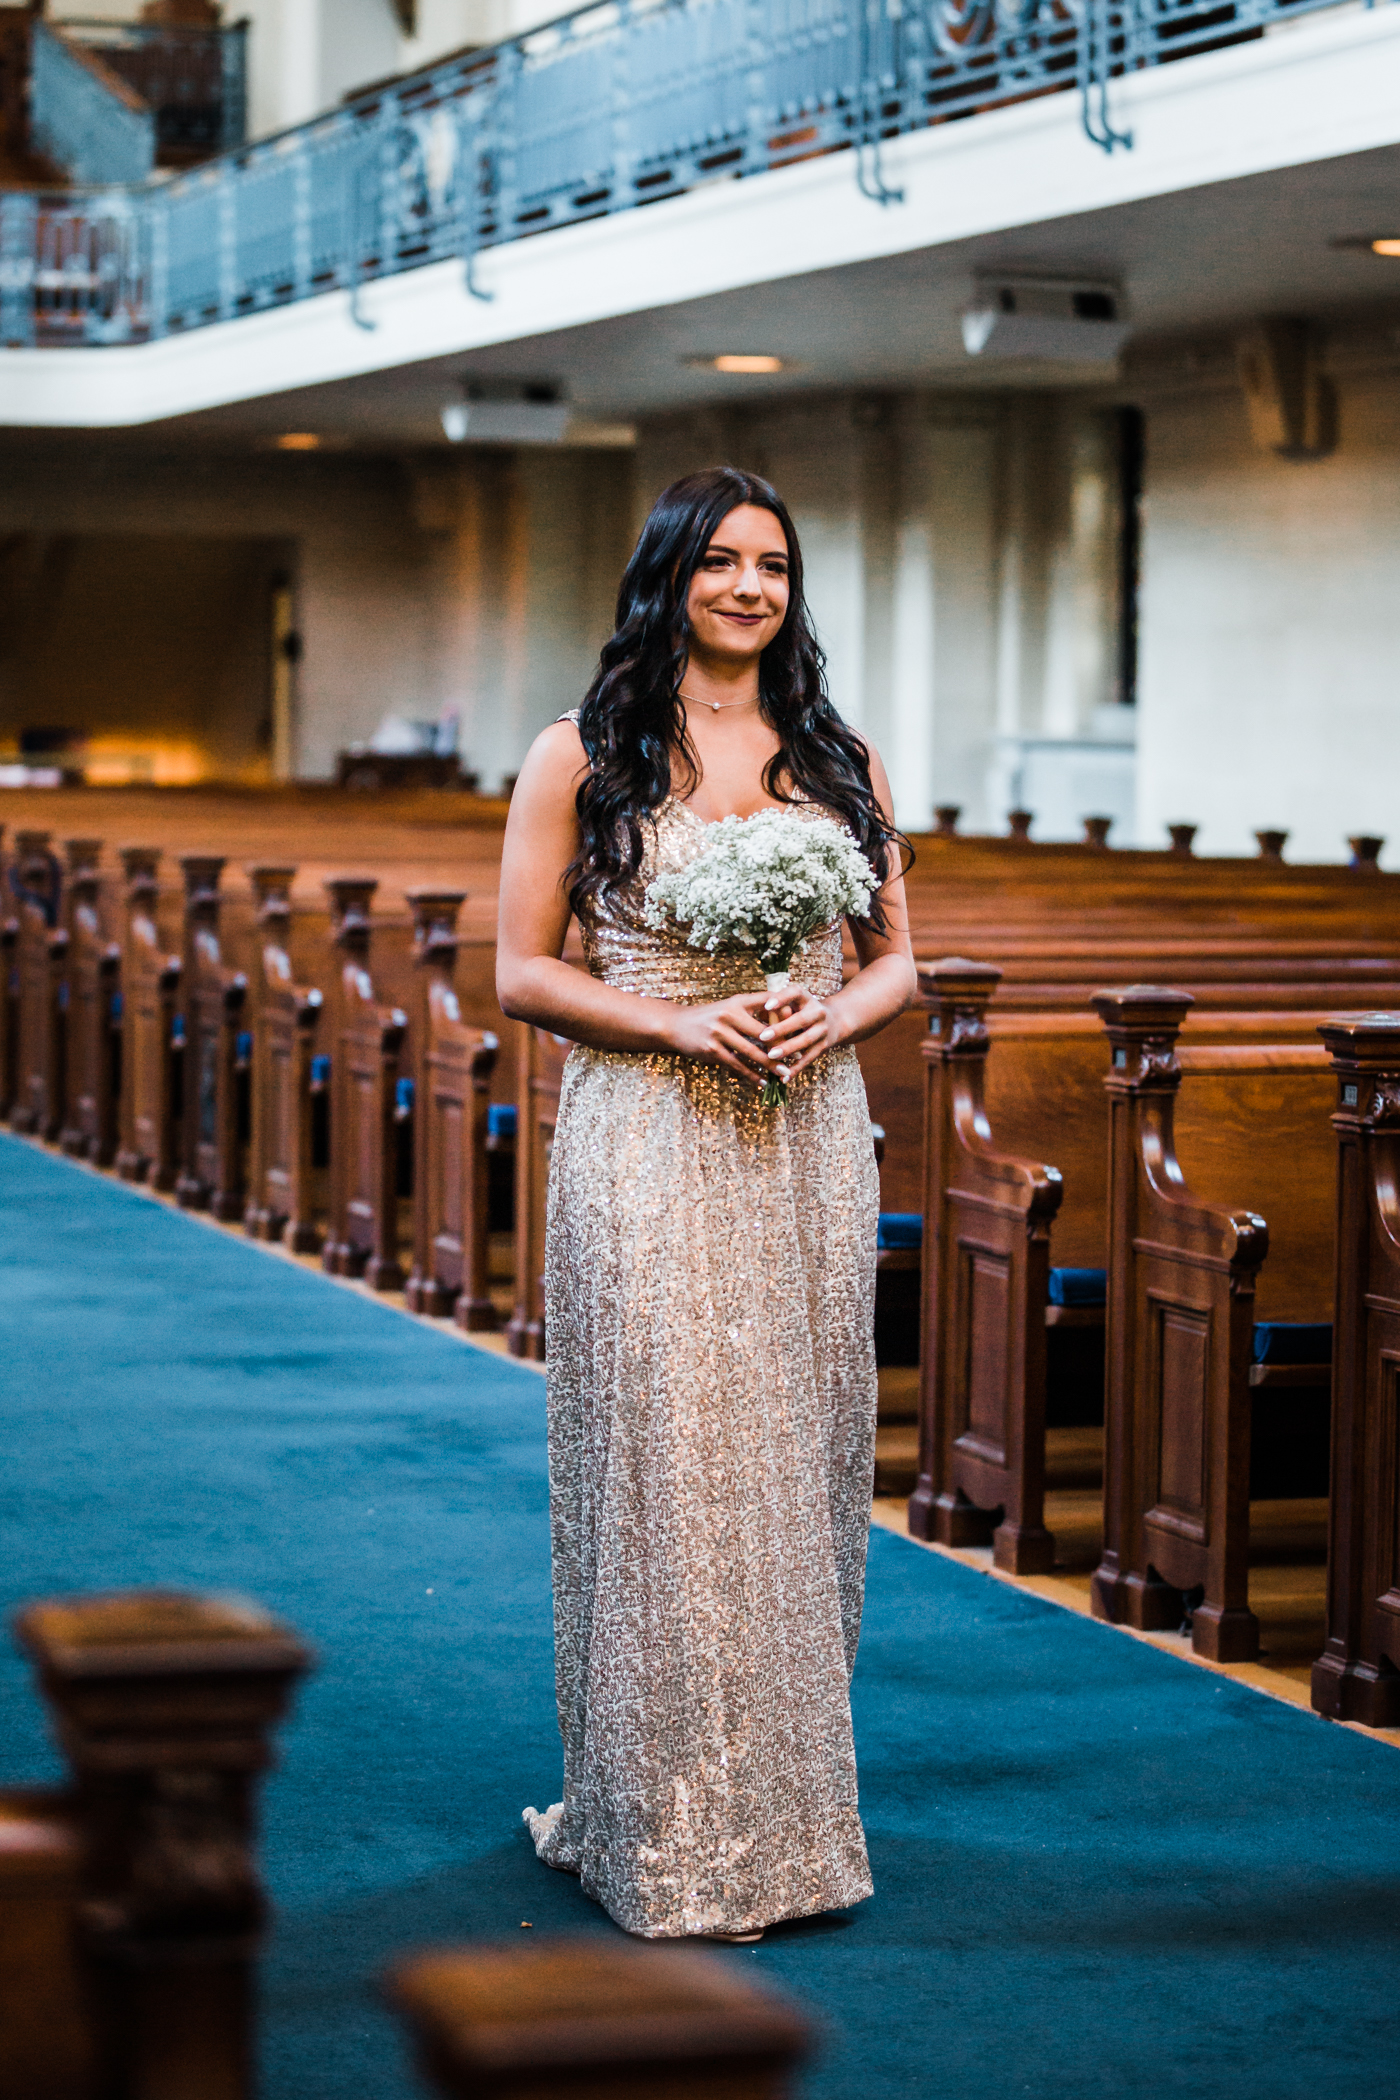 brides sister and MOH walking down the aisle - top rated wedding photographer in Maryland